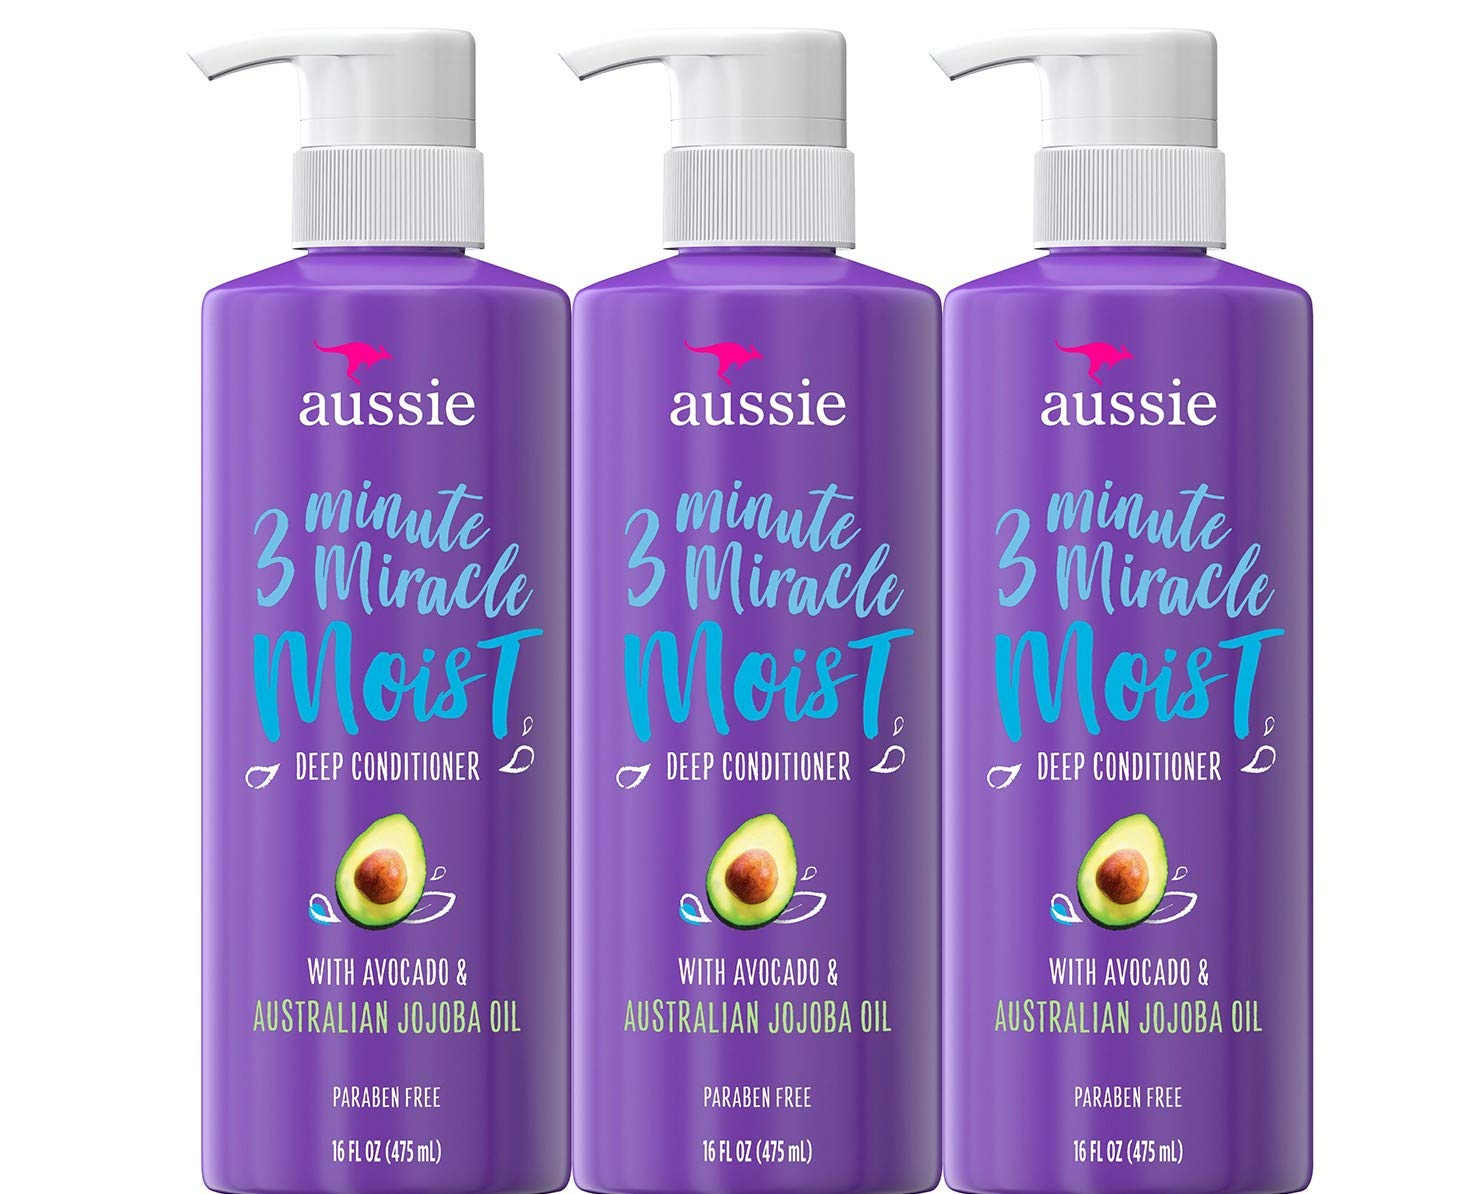 Aussie Deep Conditioner, with Avocado. Paraben Free, 3 Minute Miracle Moist, For Dry Hair, 16 Fl Oz, Triple Pack